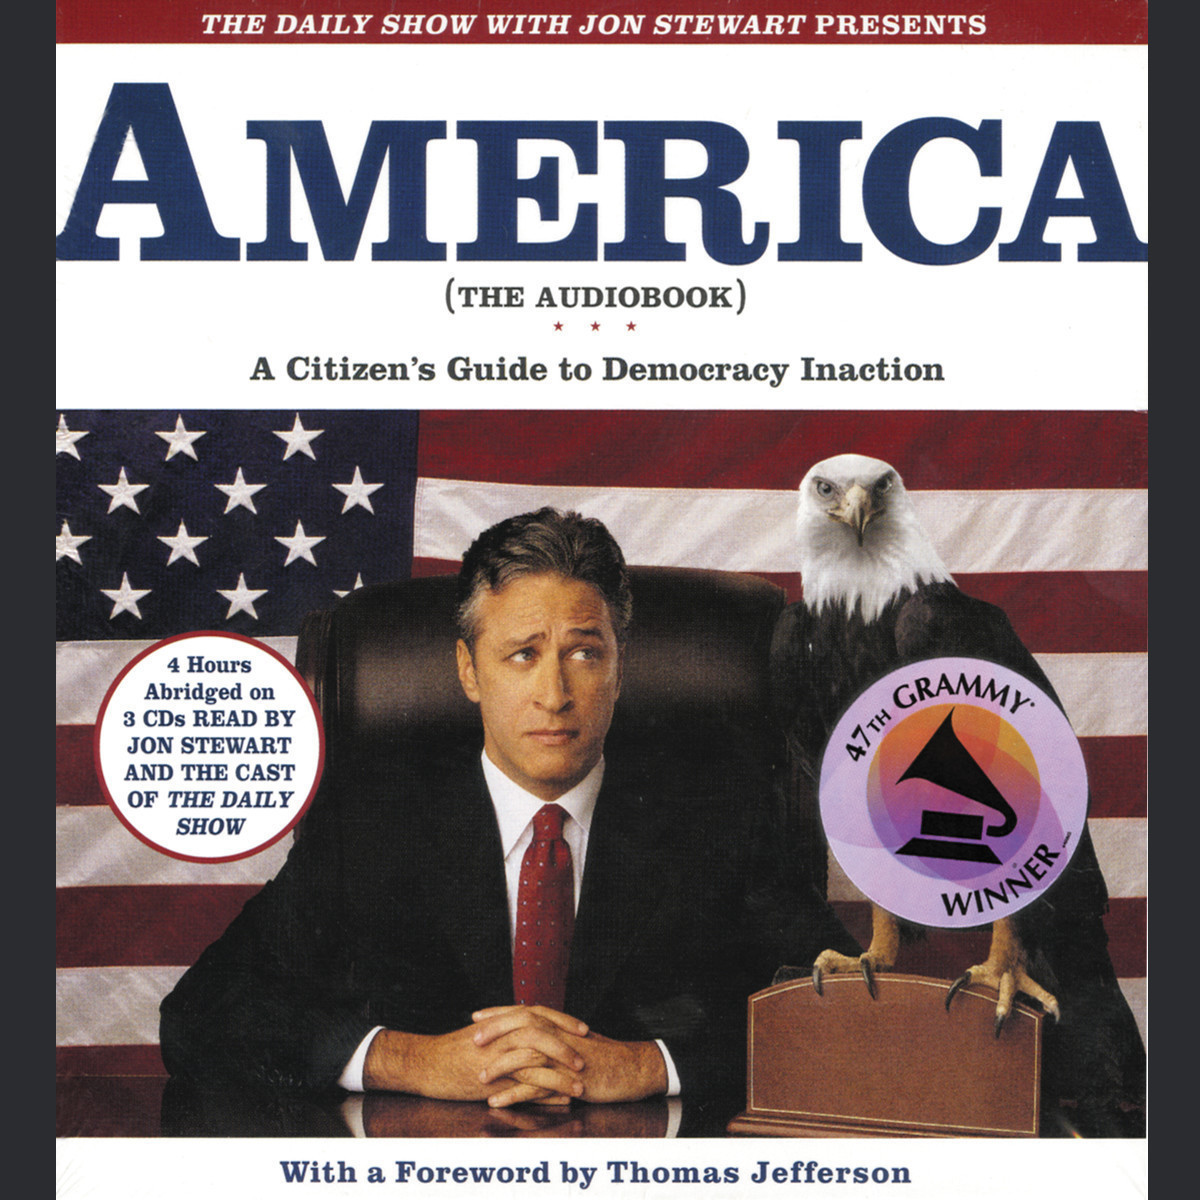 Printable The Daily Show with Jon Stewart Presents America (The Audiobook): A Citizen's Guide to Democracy Inaction Audiobook Cover Art